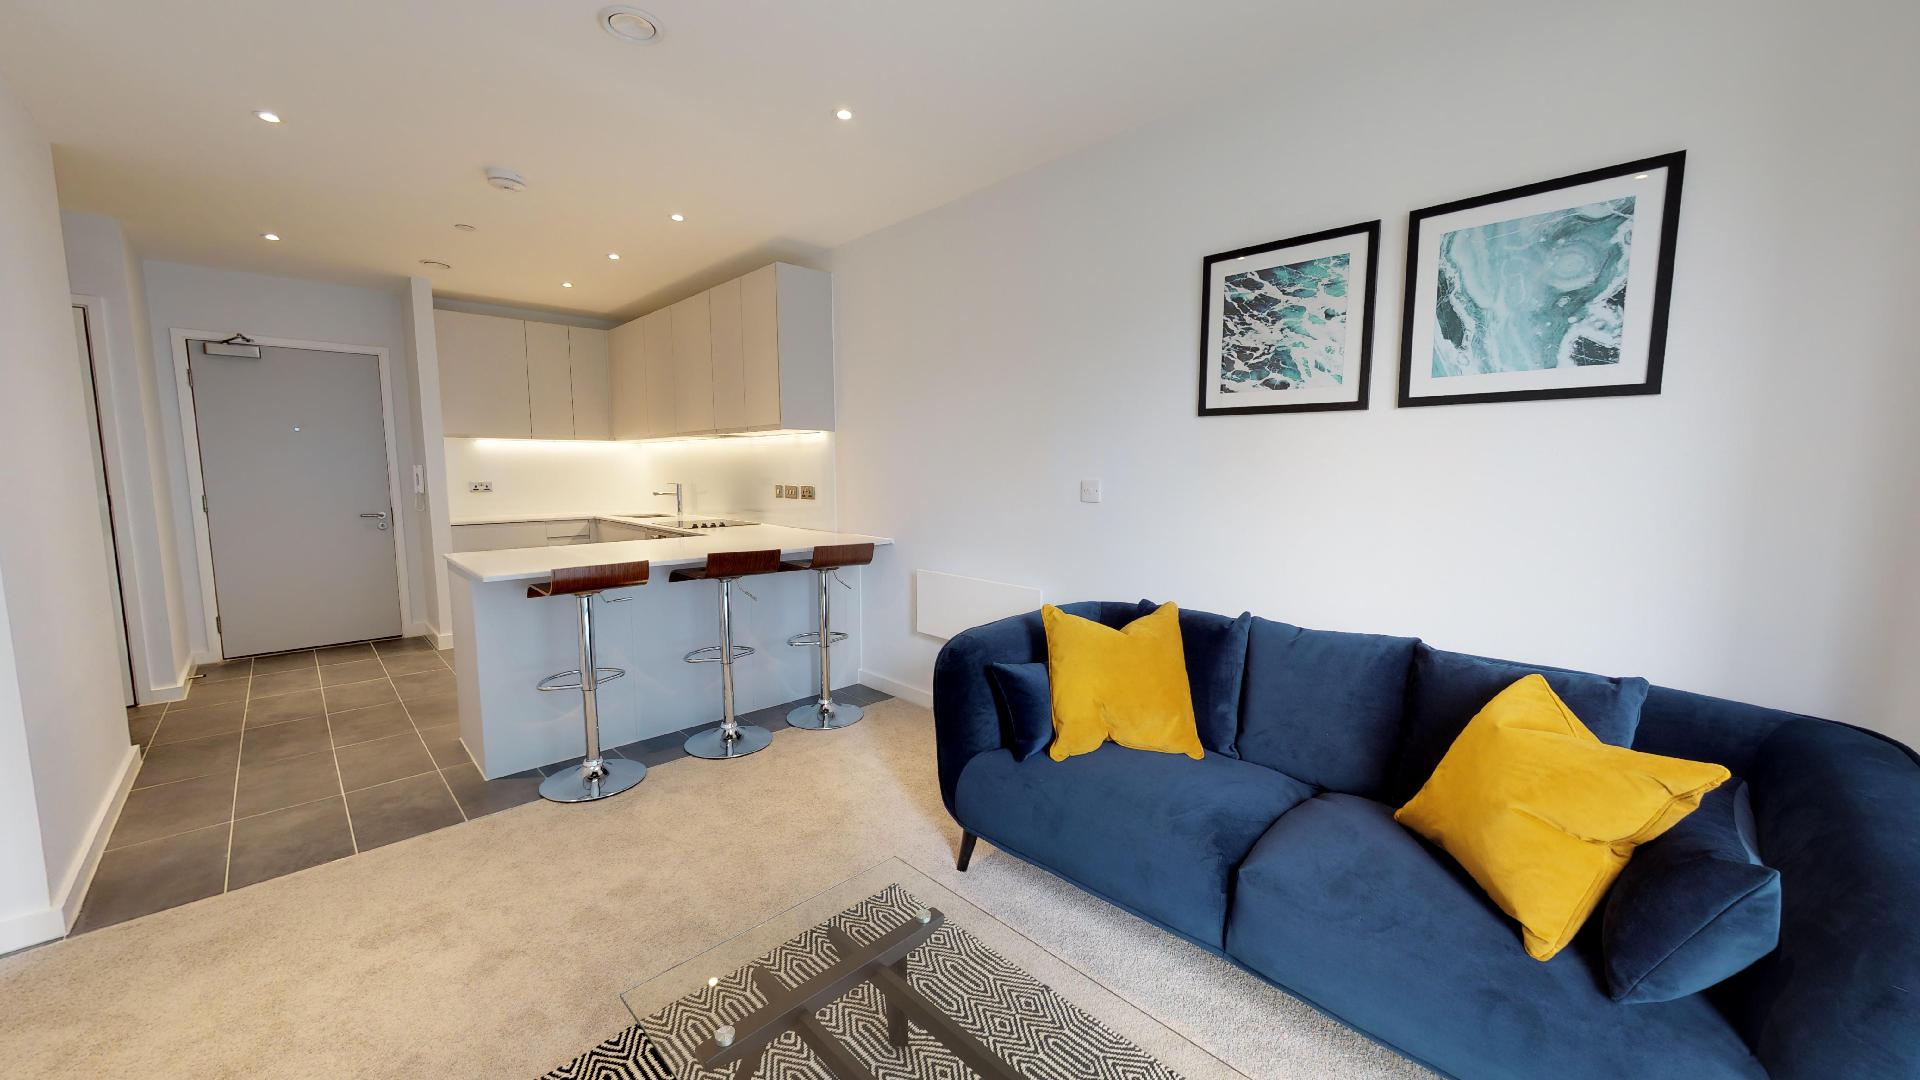 Virtual tour of Local Blackfriars apartments, Manchester ...